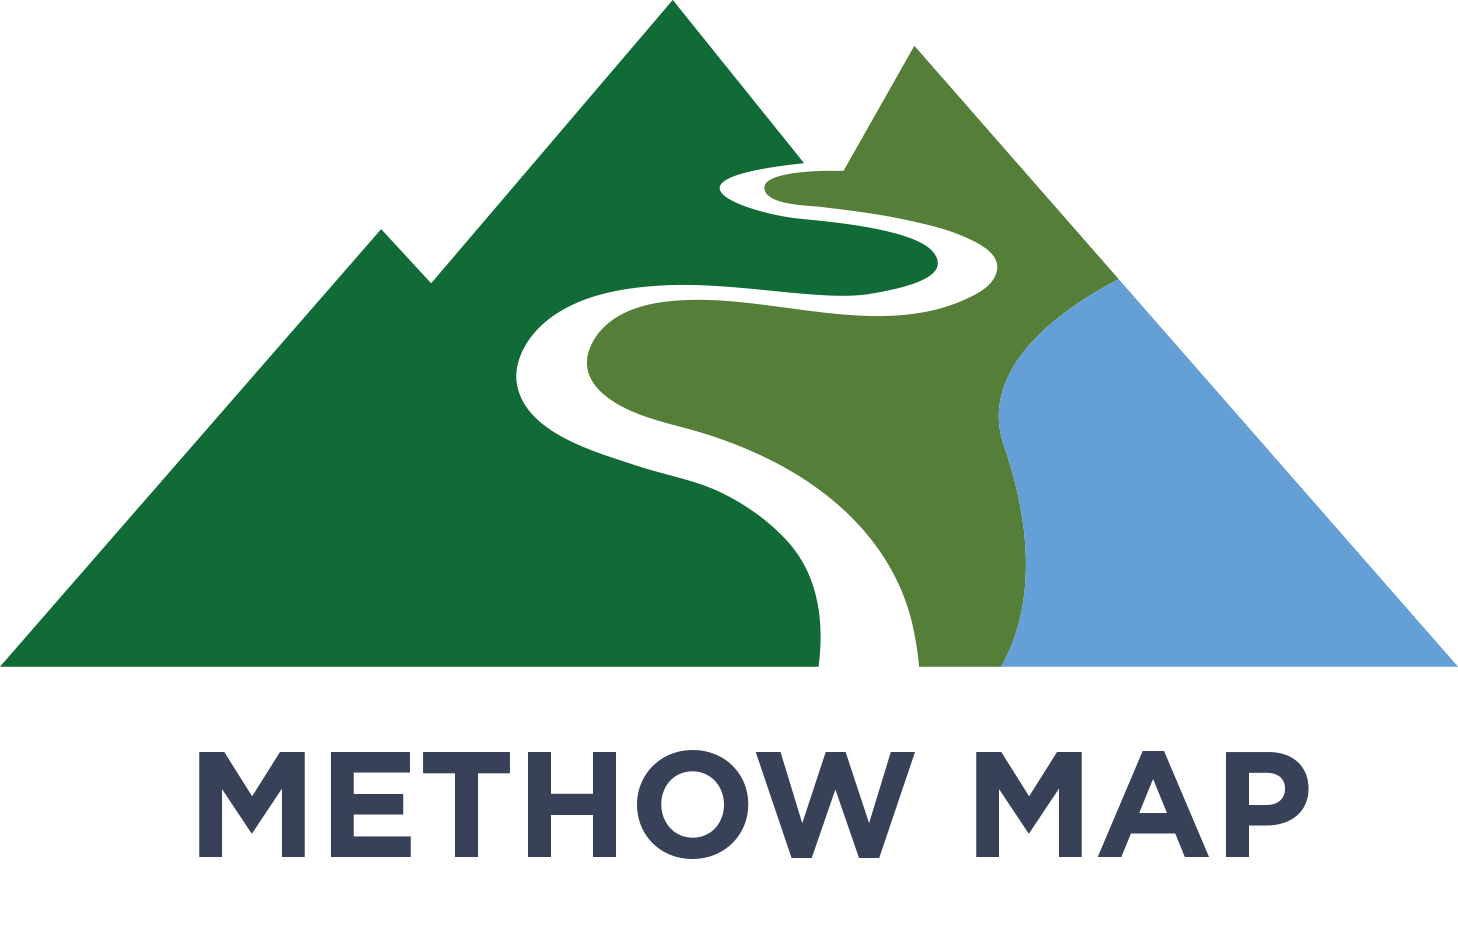 About Methow Map